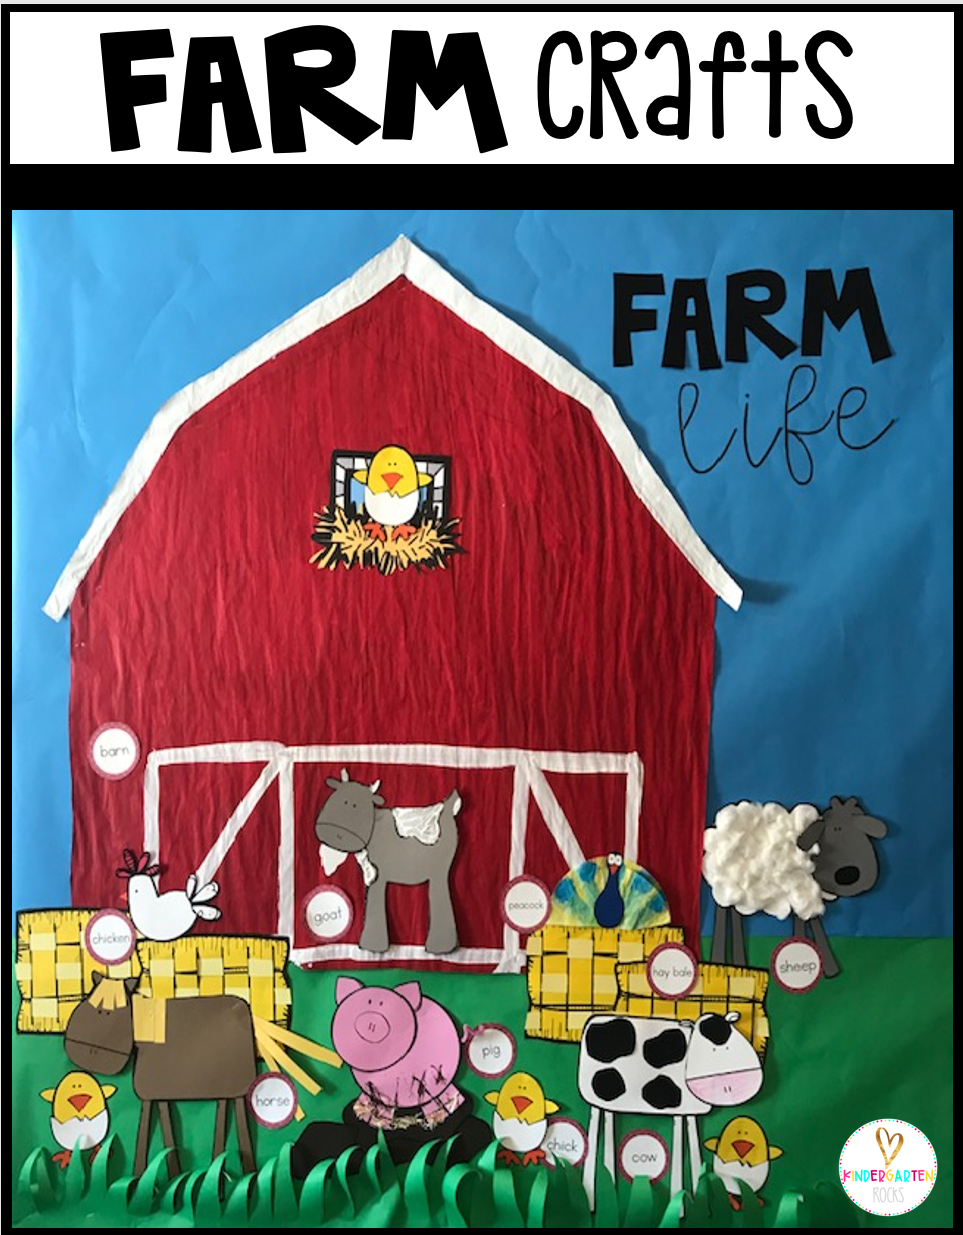 Are you looking for a fun age appropriate crafts for kids?  Then you will love Farm Crafts.  This unit is perfect for your farm tale unit at any time throughout the year.  Increase student vocabulary and readiness skills with hands on crafts.